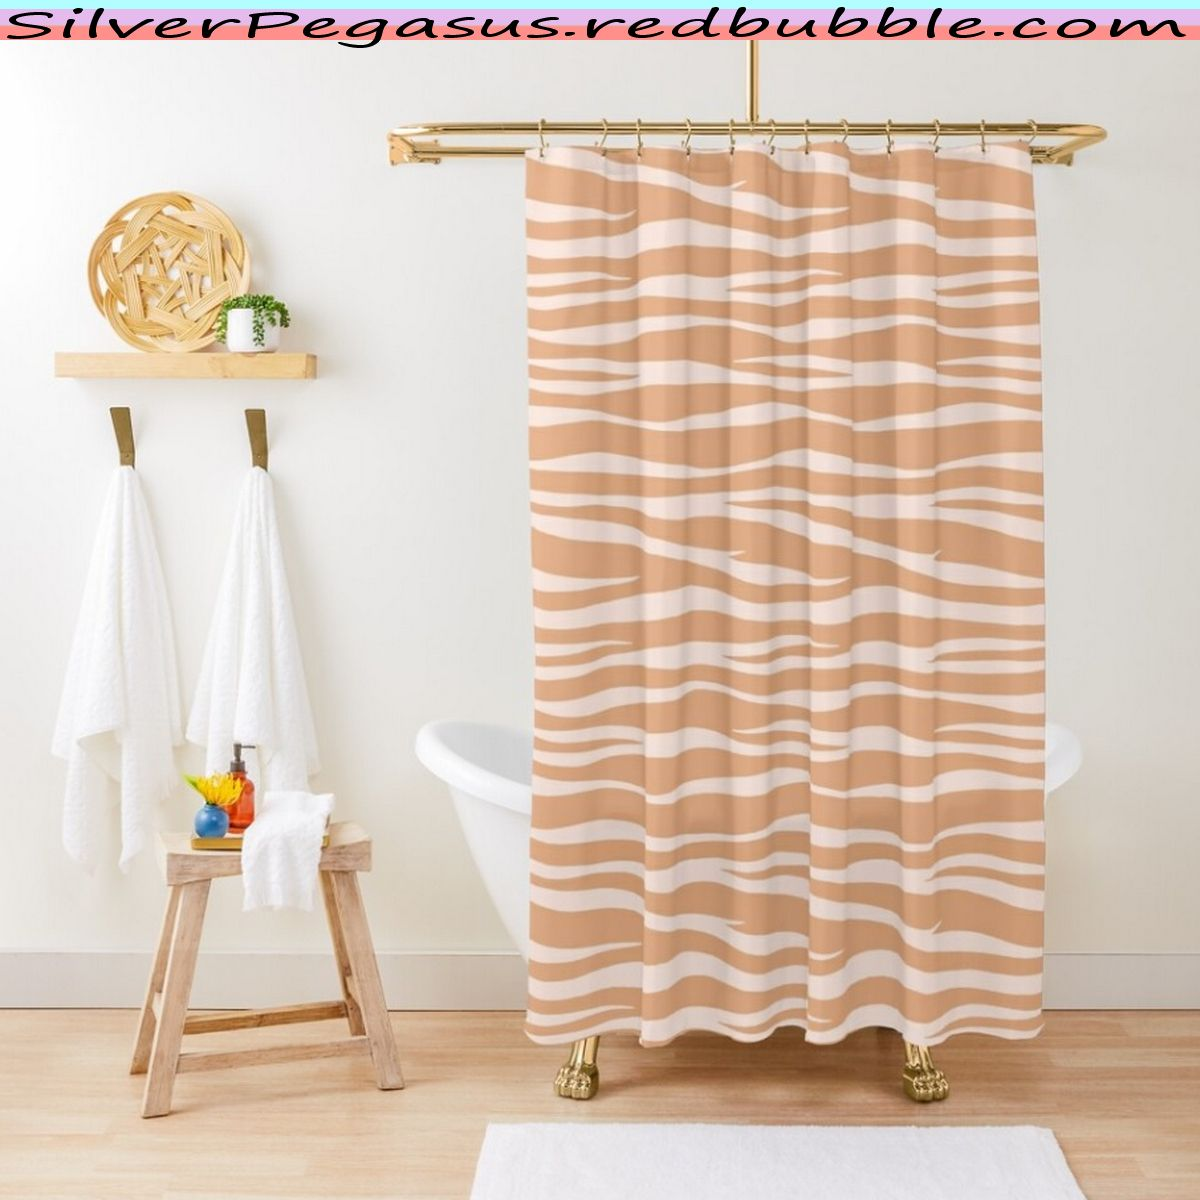 Zebra Print Toffee Caramel Shower Curtain By Silverpegasus In